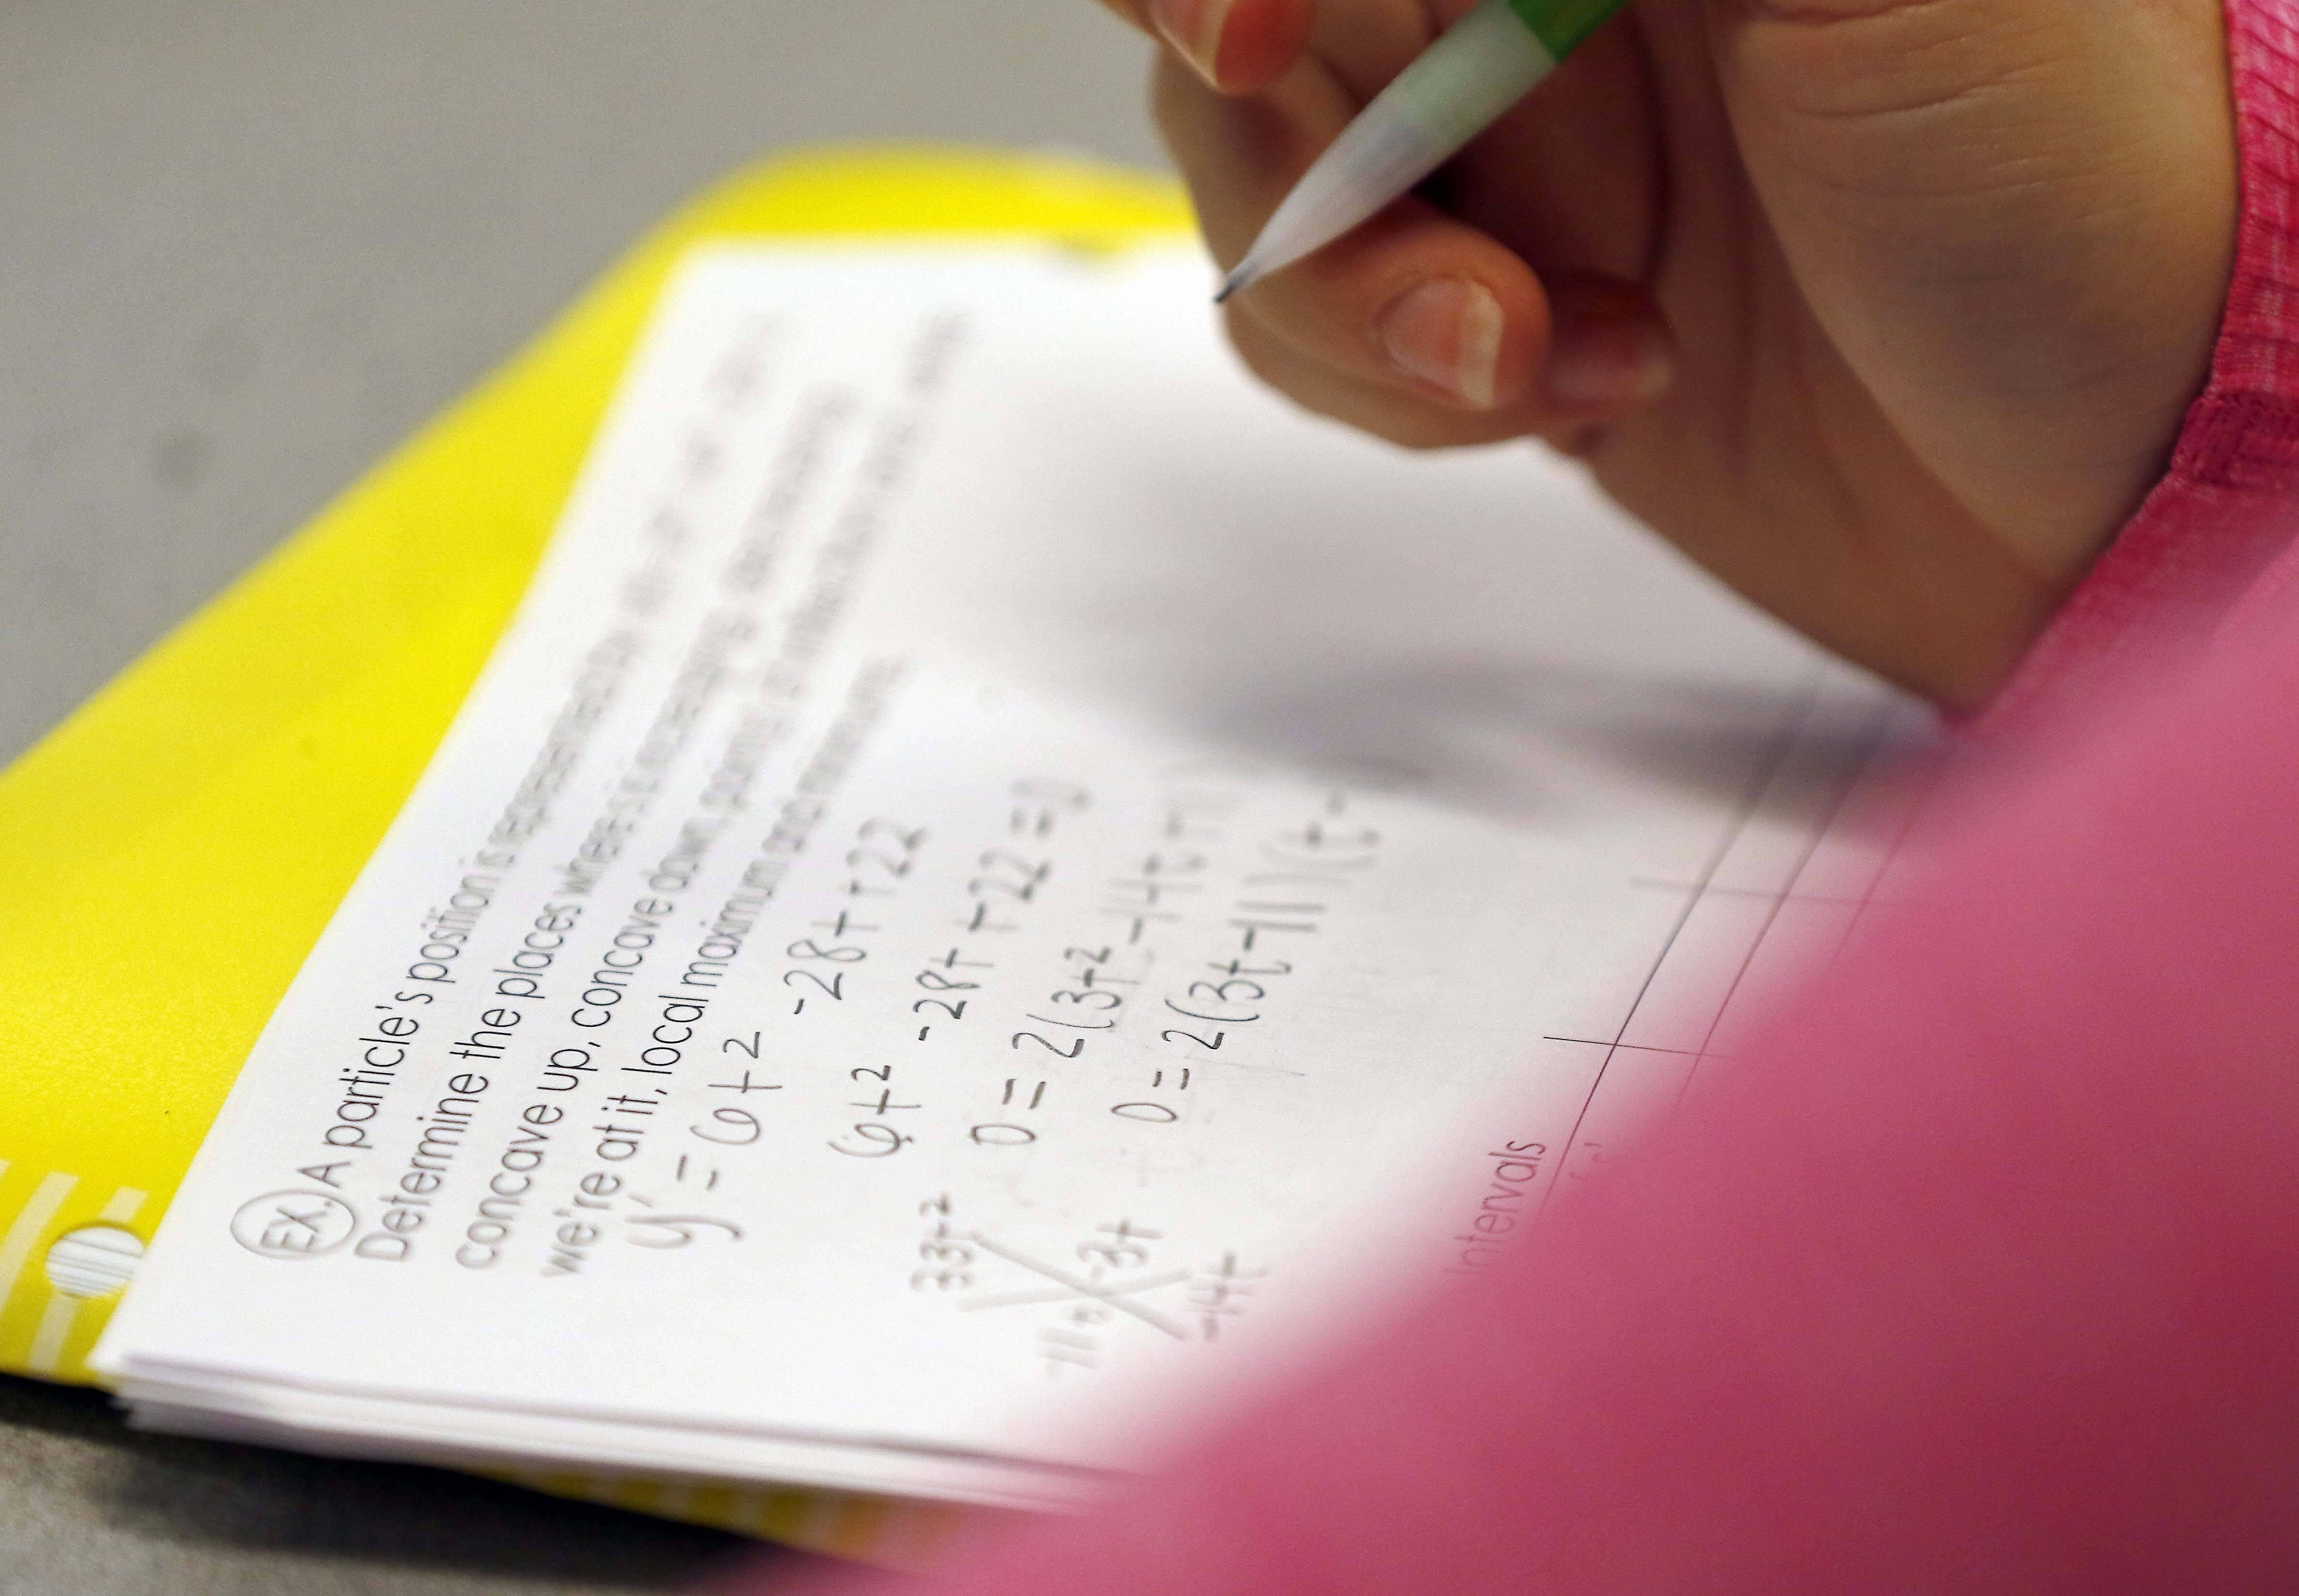 A student works on a math assignment during an AP Calculus class at St. Charles North High School.